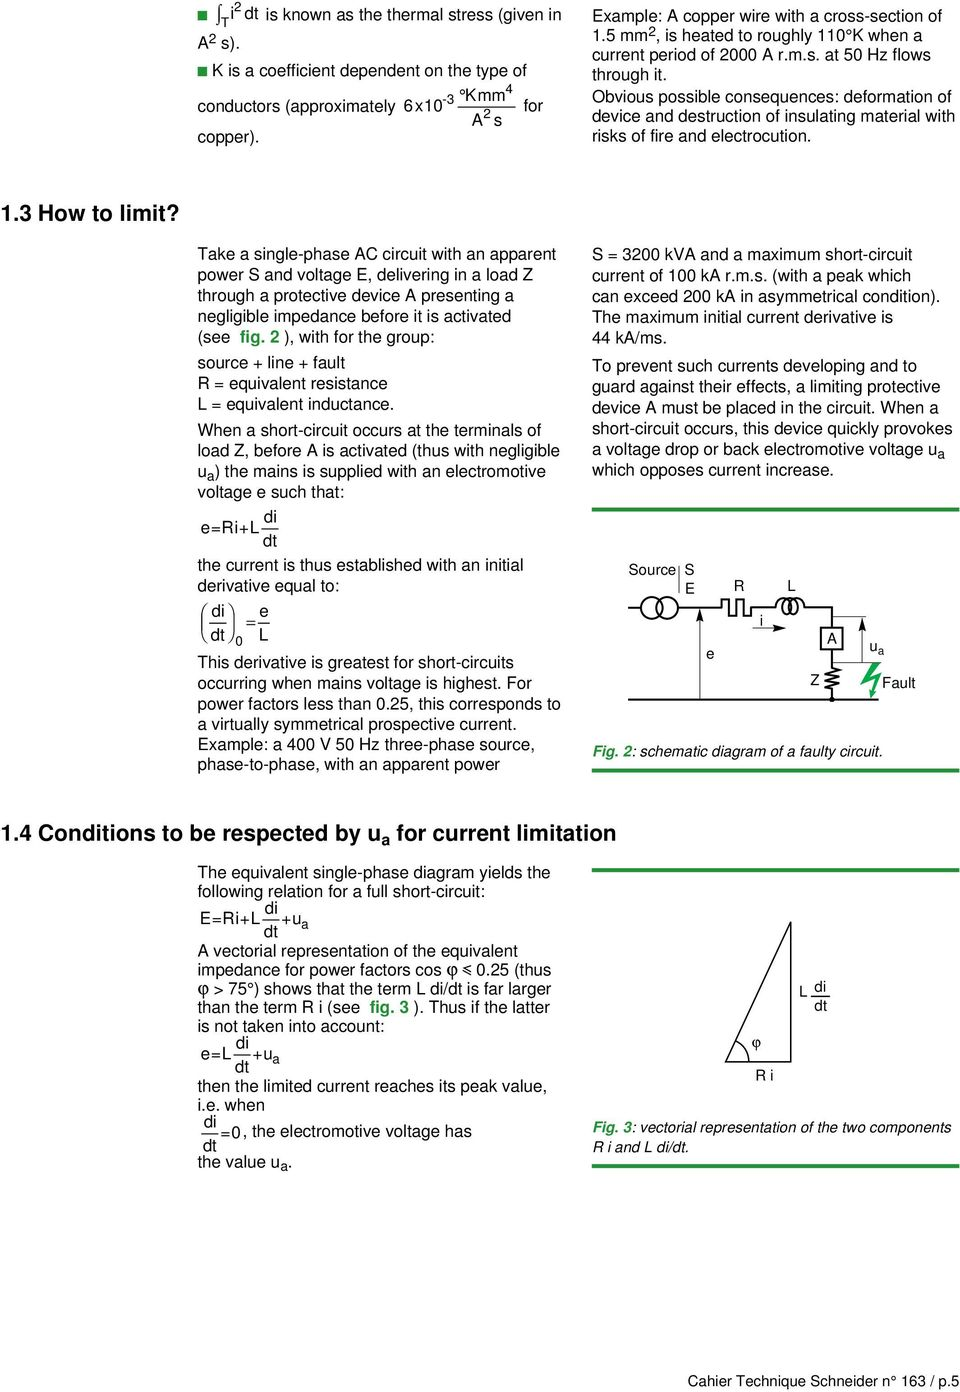 Cahier Technique No Pdf Figure 2 Pushbutton Closed Circuit Current Flows Obvious Possible Consequences Deformation Of Device And Destruction Insulating Material With Risks Fire